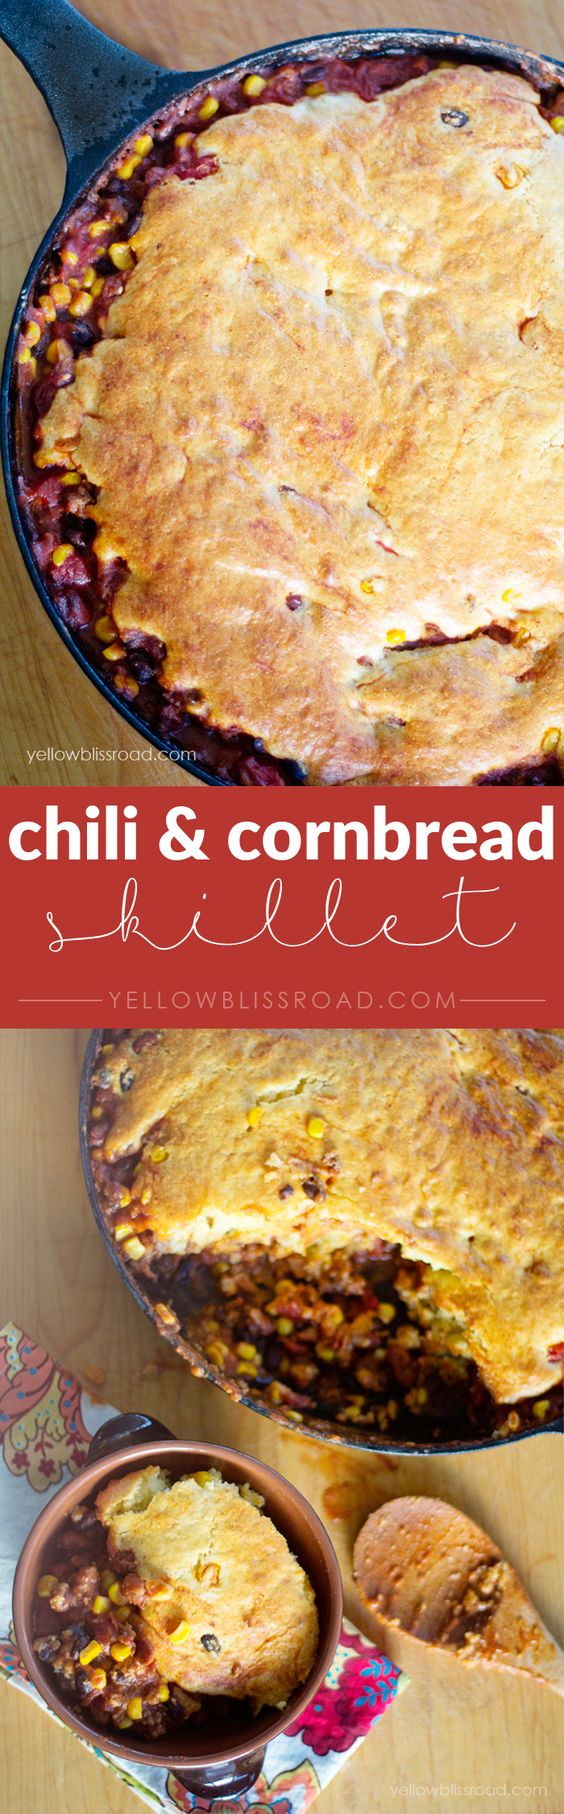 Chili and Cornbread Skillet - a perfect fall meal and so easy because it all cooks in pan.